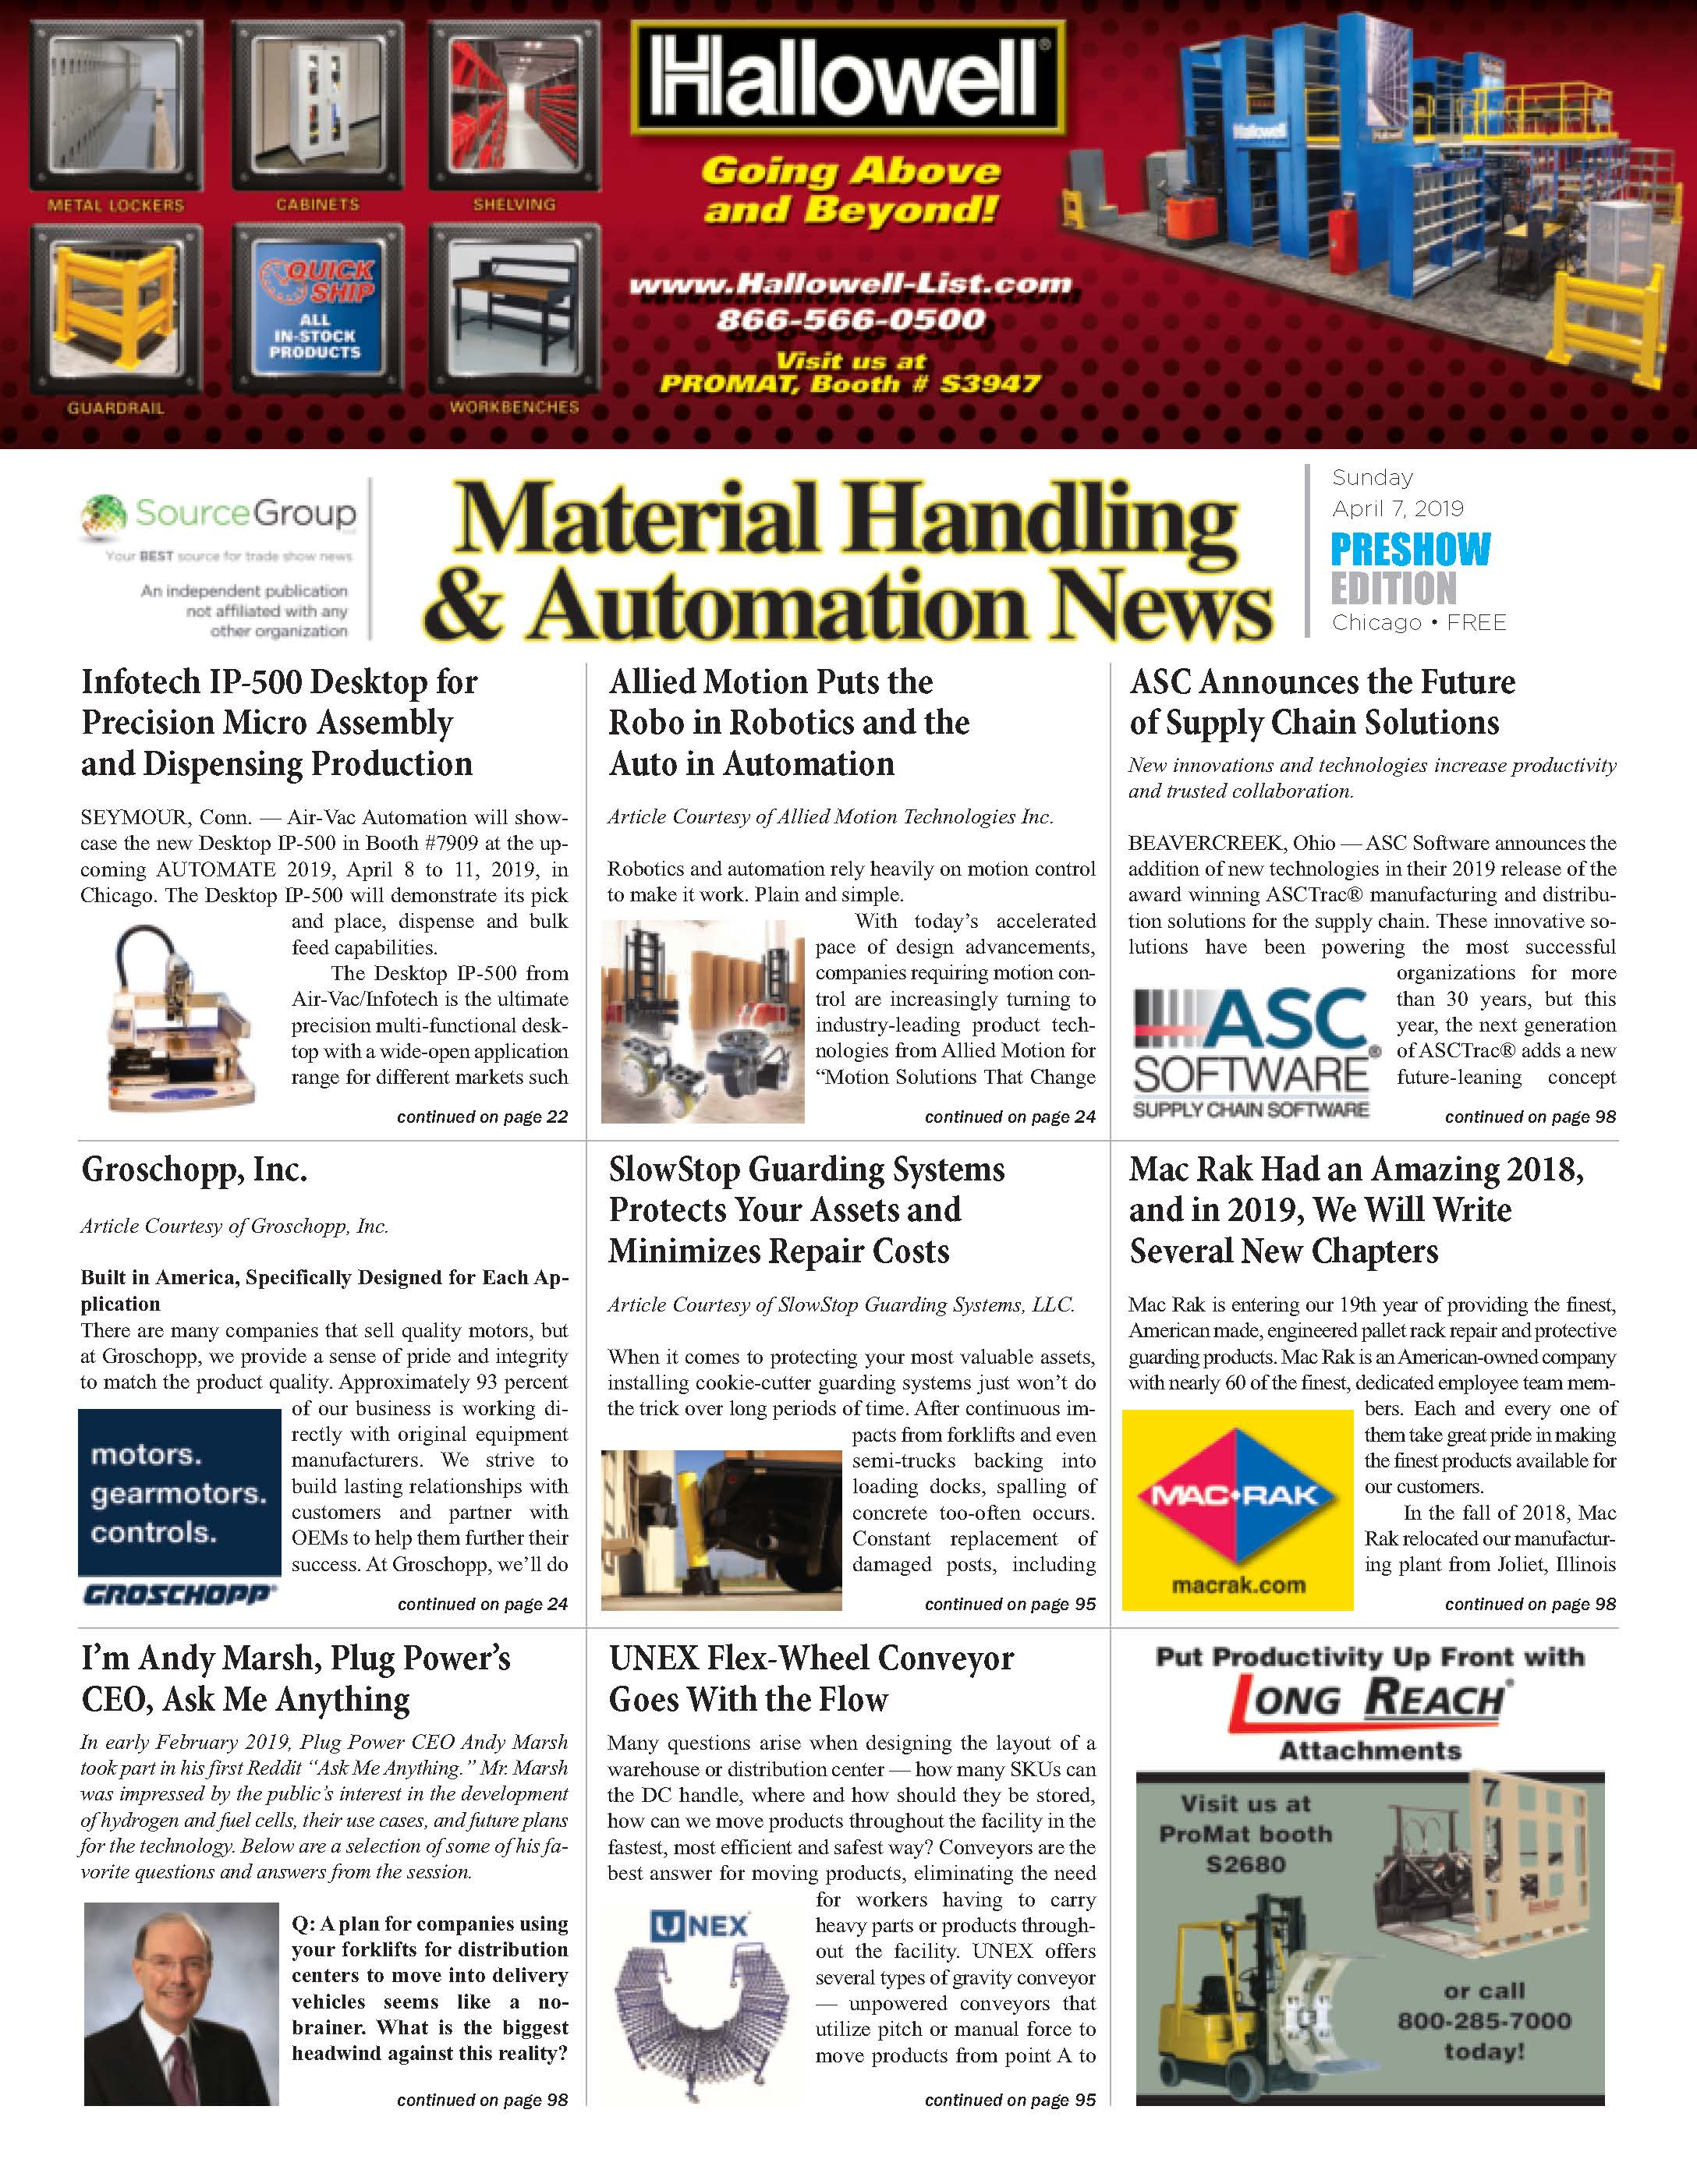 Material Handling and Automation News